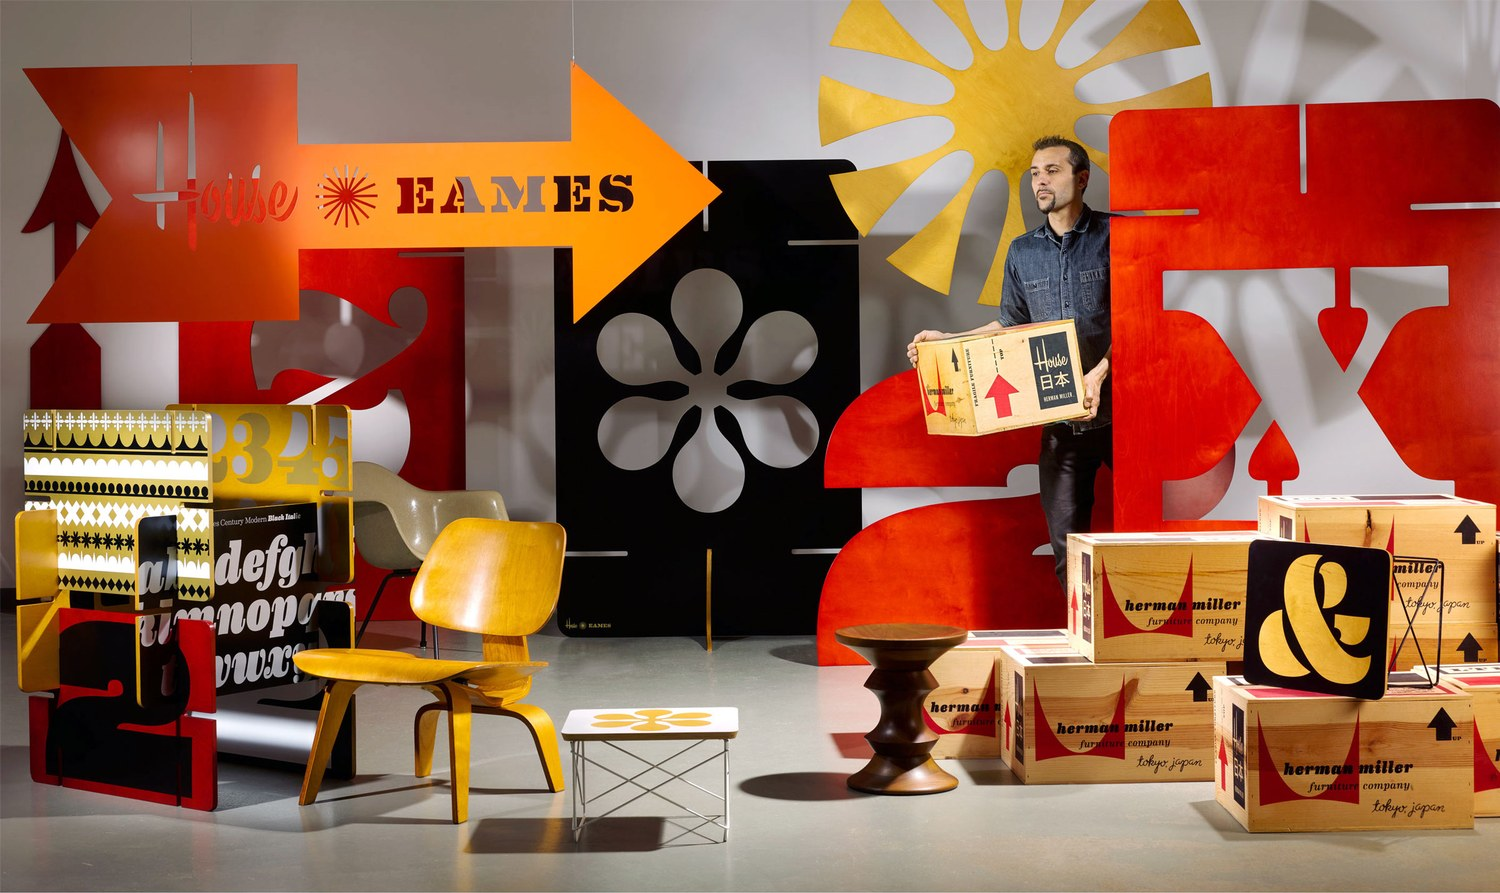 p.-76-77_Eames_Andy_©Carlos-Alejandro-Courtesy-of-House-Industries.jpg